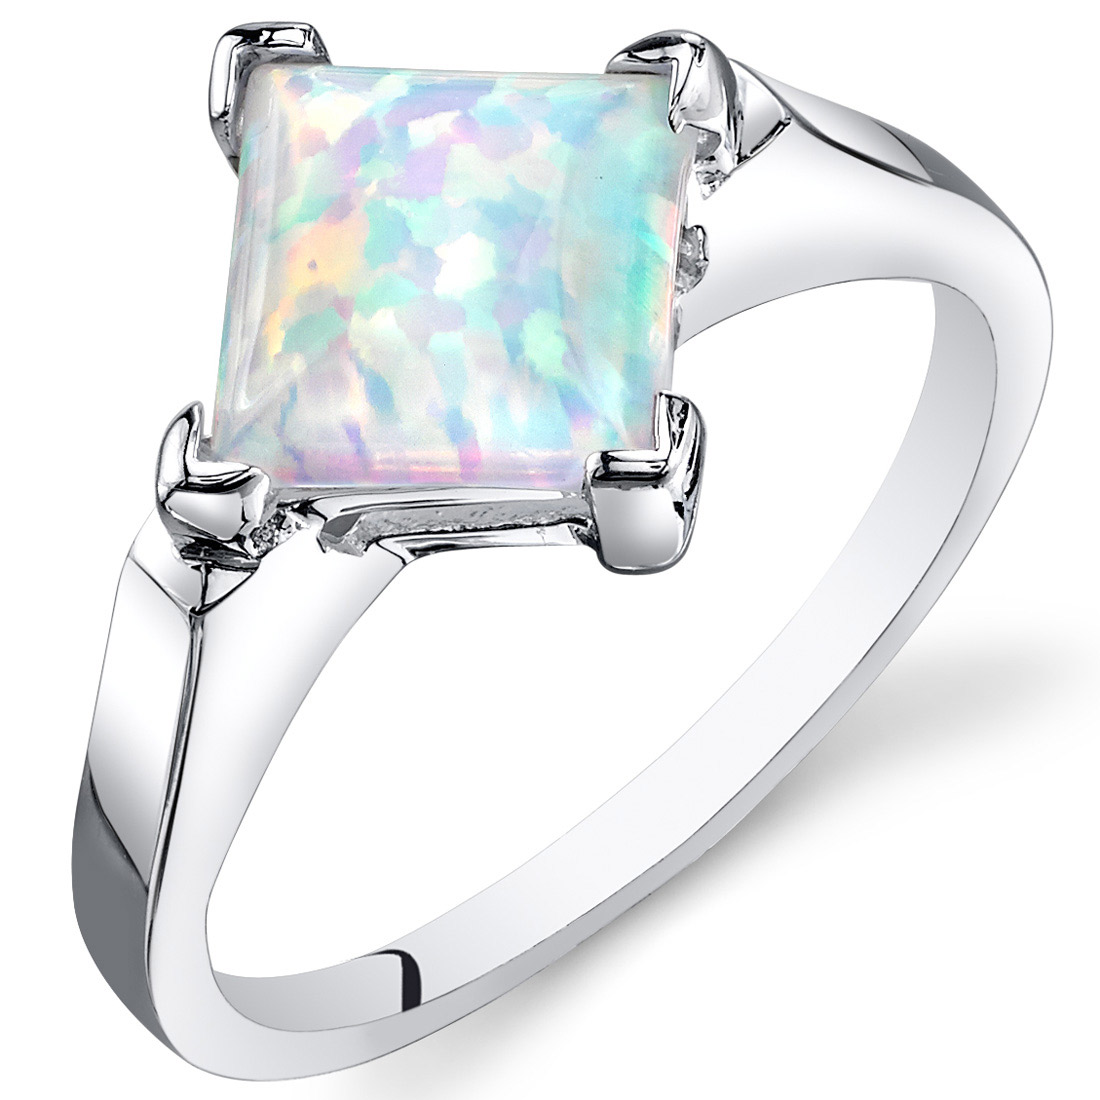 Peora 1.50 Ct Created Opal Engagement Ring in Rhodium-Plated Sterling Silver